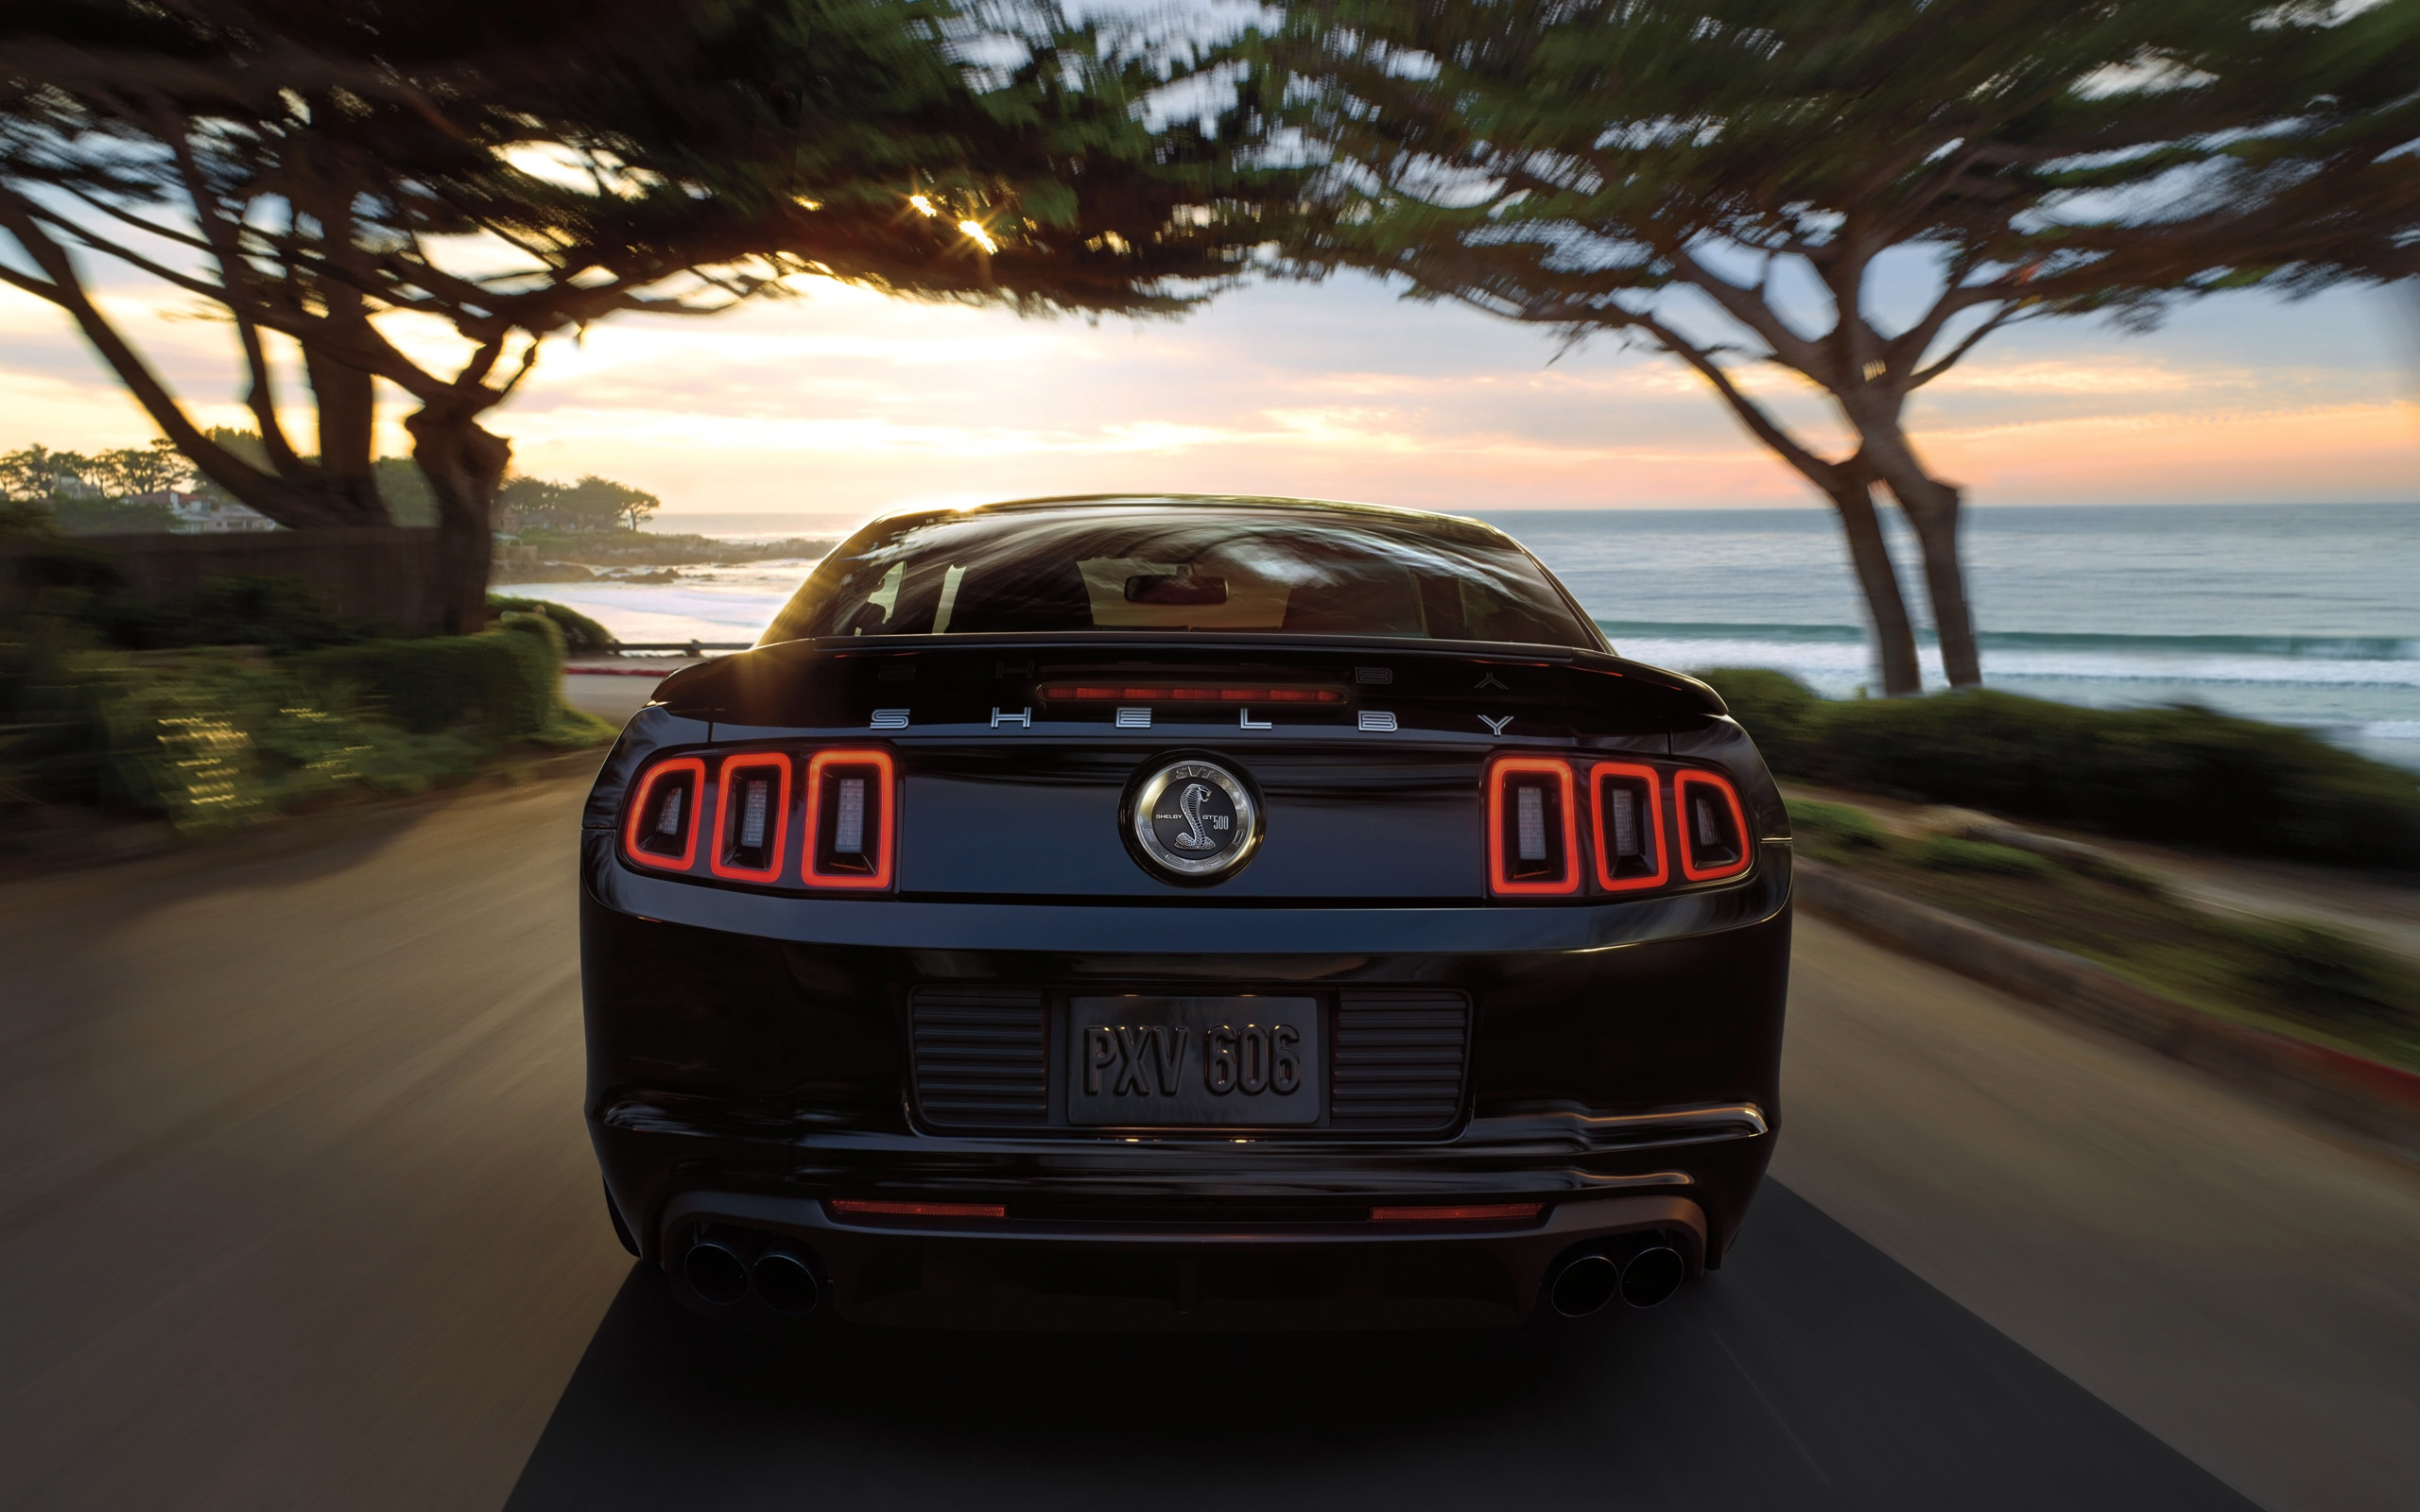 2014 Ford Mustang Muscle G Wallpaper 2560x1600 149371 Wallpaperup